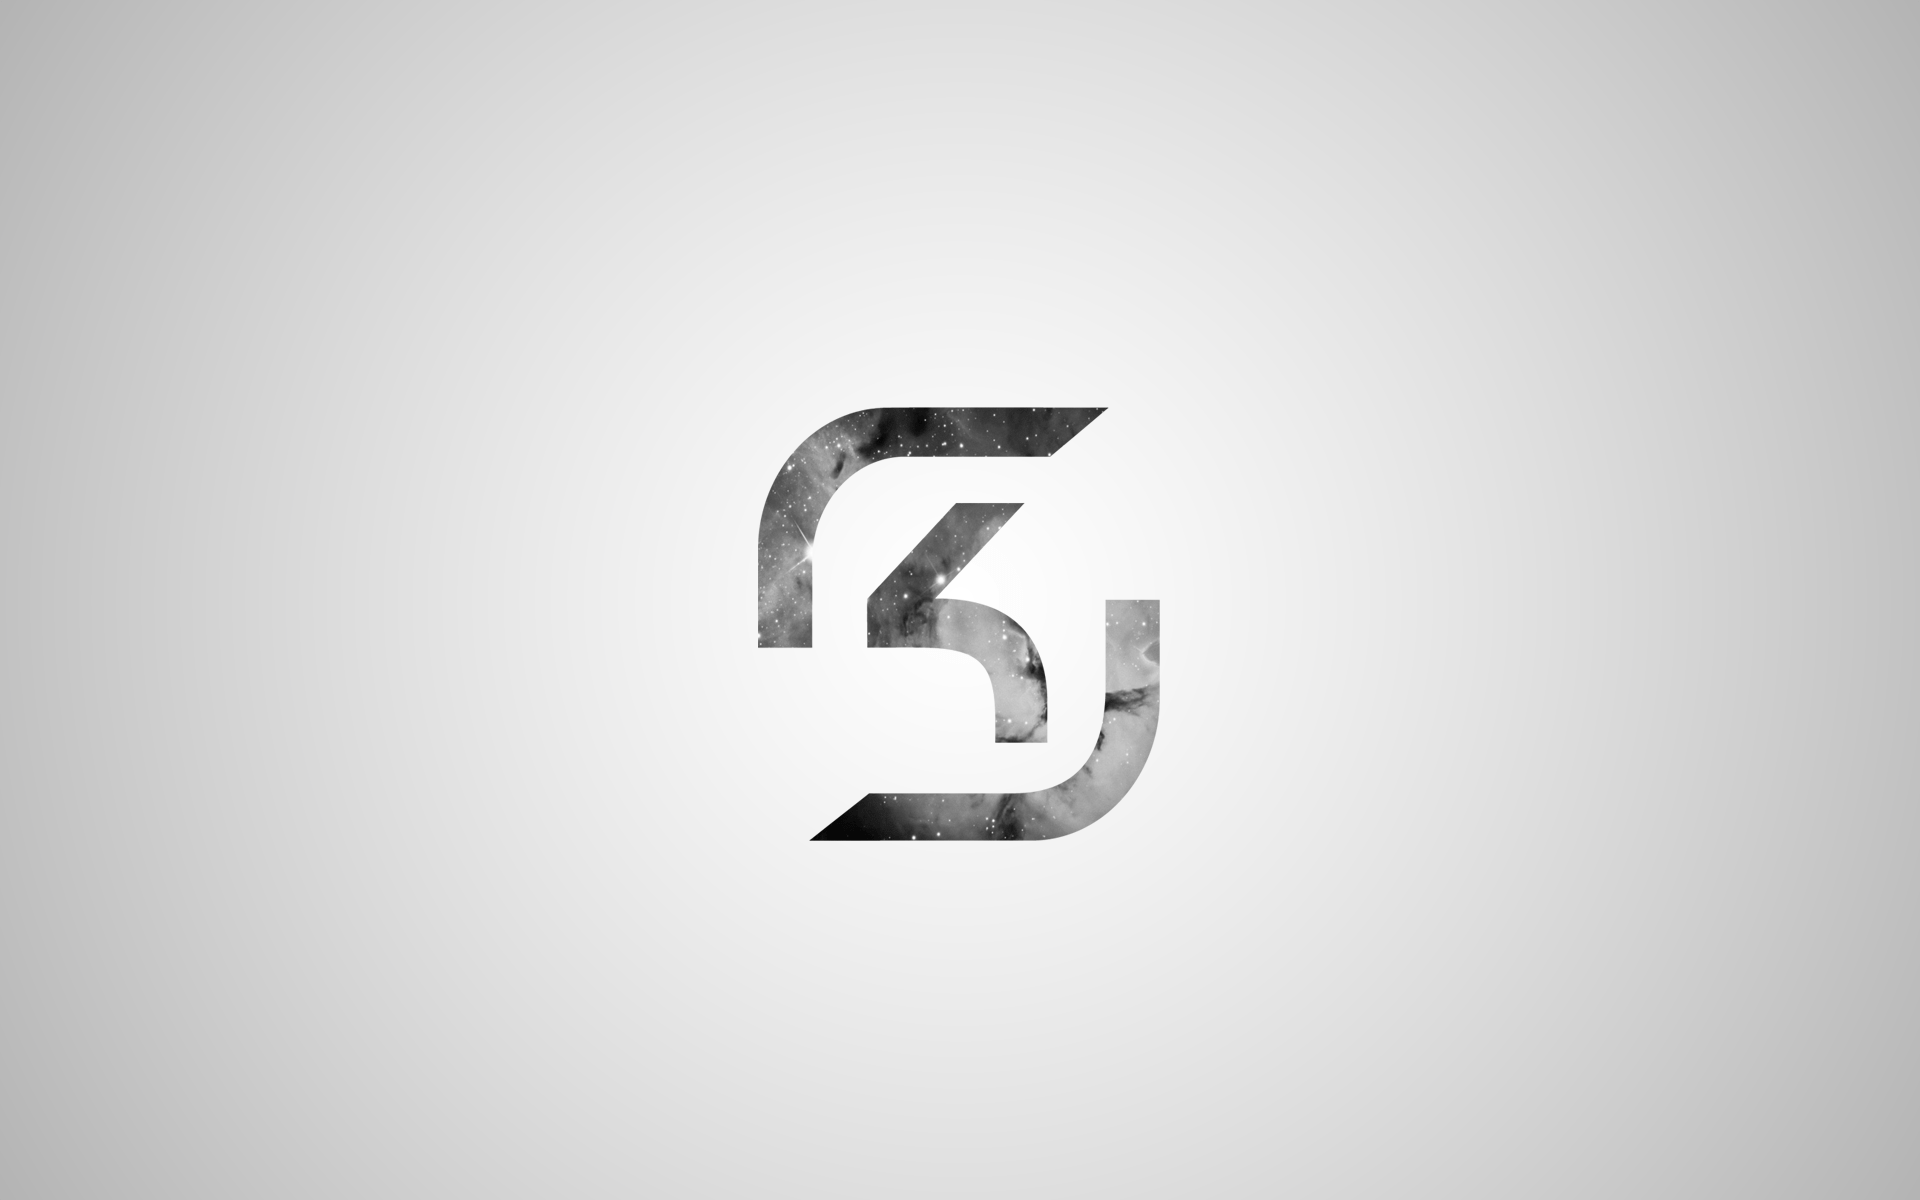 3d Game Wallpaper For Mobile Sk Gaming Galaxy Cs Go Wallpapers And Backgrounds